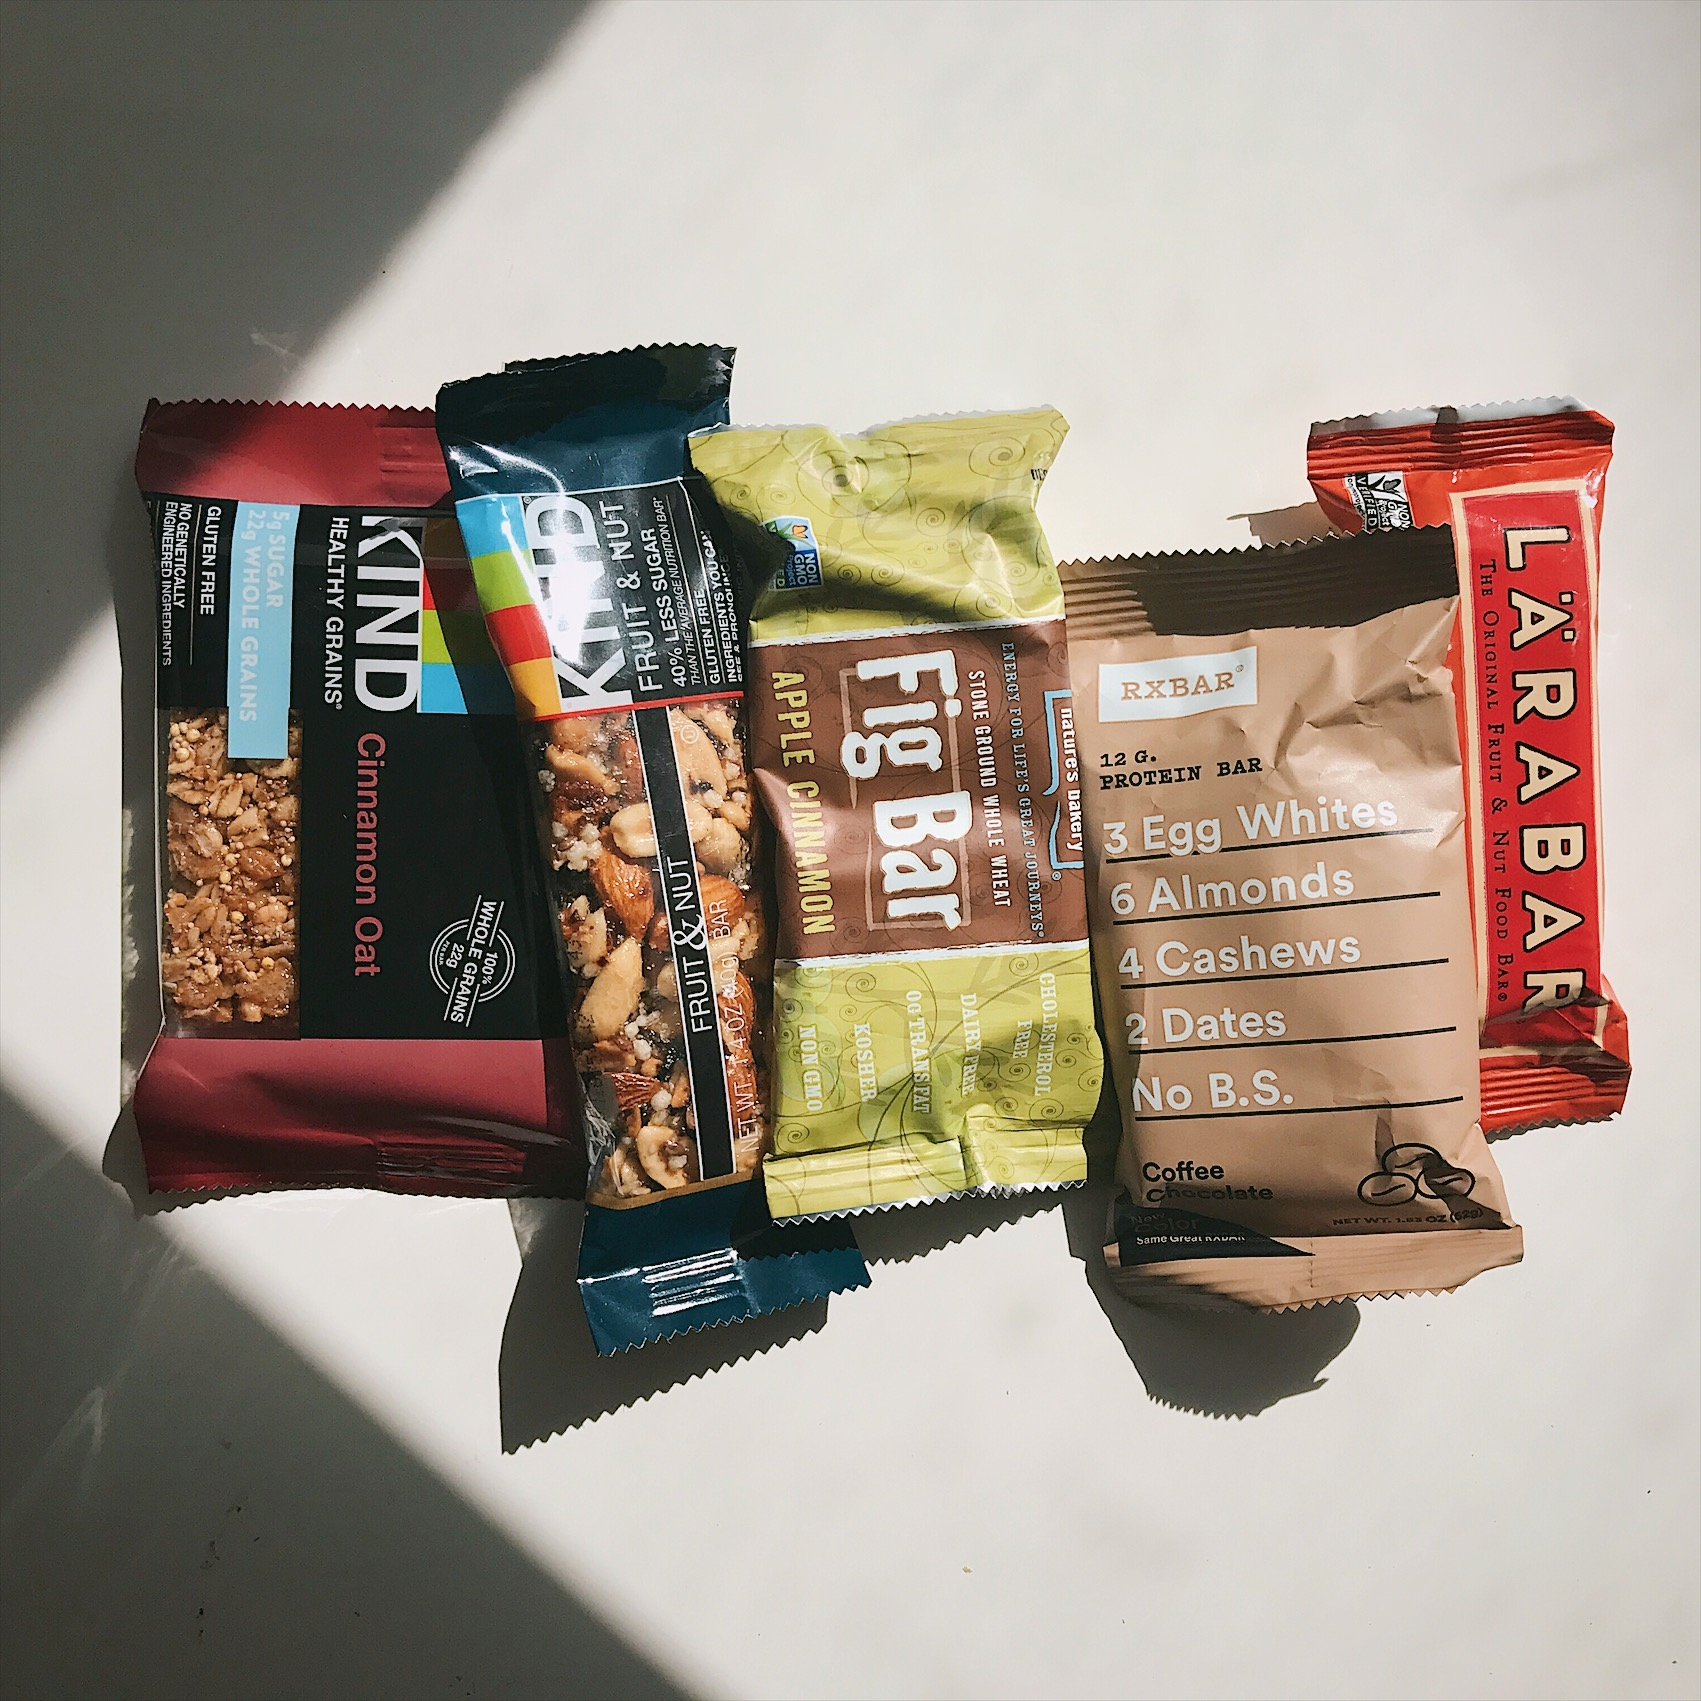 JOLI'S TOP 5 FOOD BARS - A.M. POWER:KIND HEALTHY GRAINS OAT BARENERGY ON THE TRAIL:KIND FRUIT + NUT BARAFTERNOON PICK-ME-UP:NATURE'S BAKERY FIG BARPOST-WORK OUT FUEL:RXBAR PROTEIN BARSWEET SNACK:LARABAR FRUIT + NUT BAR